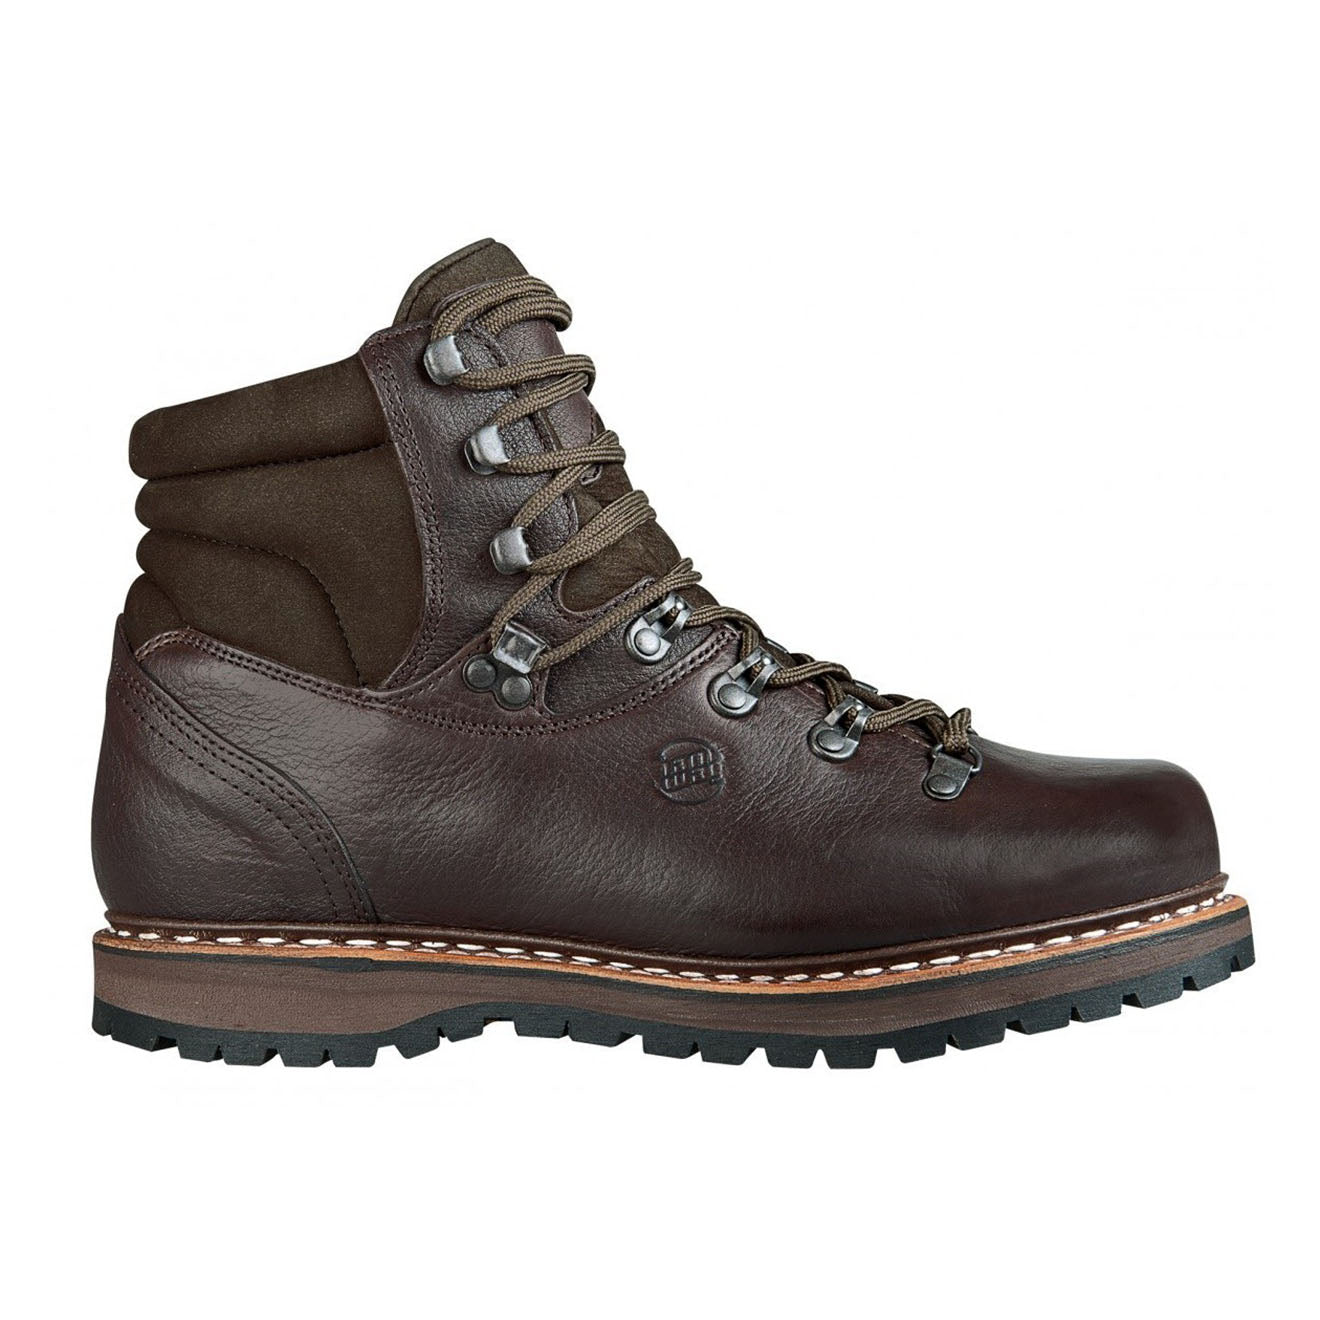 Hanwag Tashi Walking Boots Marone Chestnut